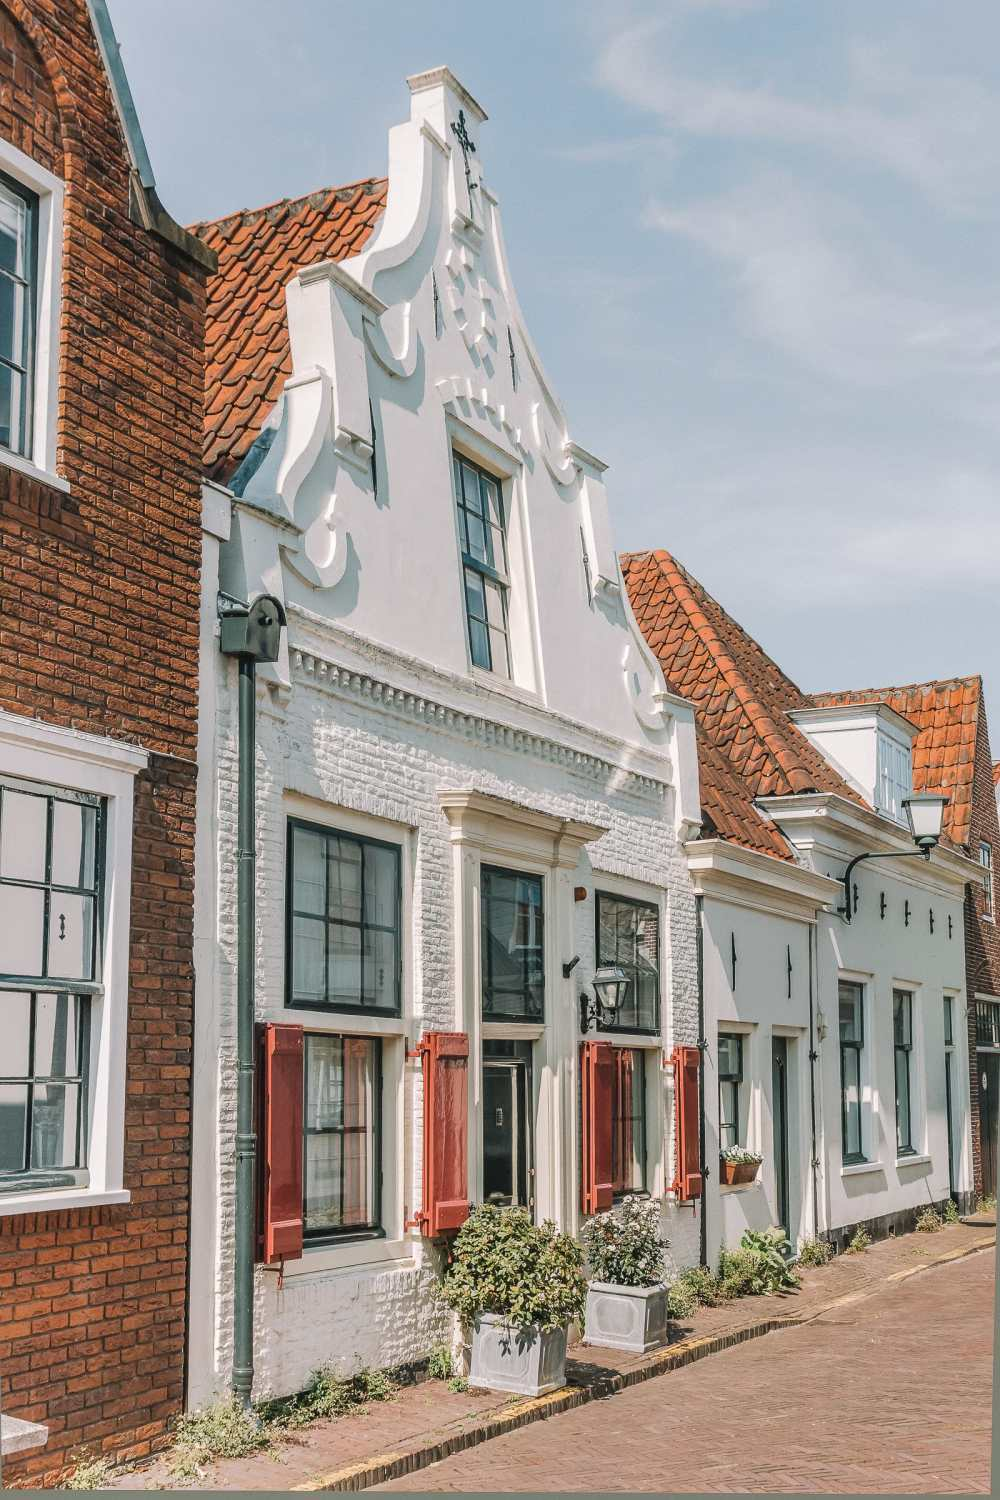 11 Best Places In The Netherlands To Visit (3)